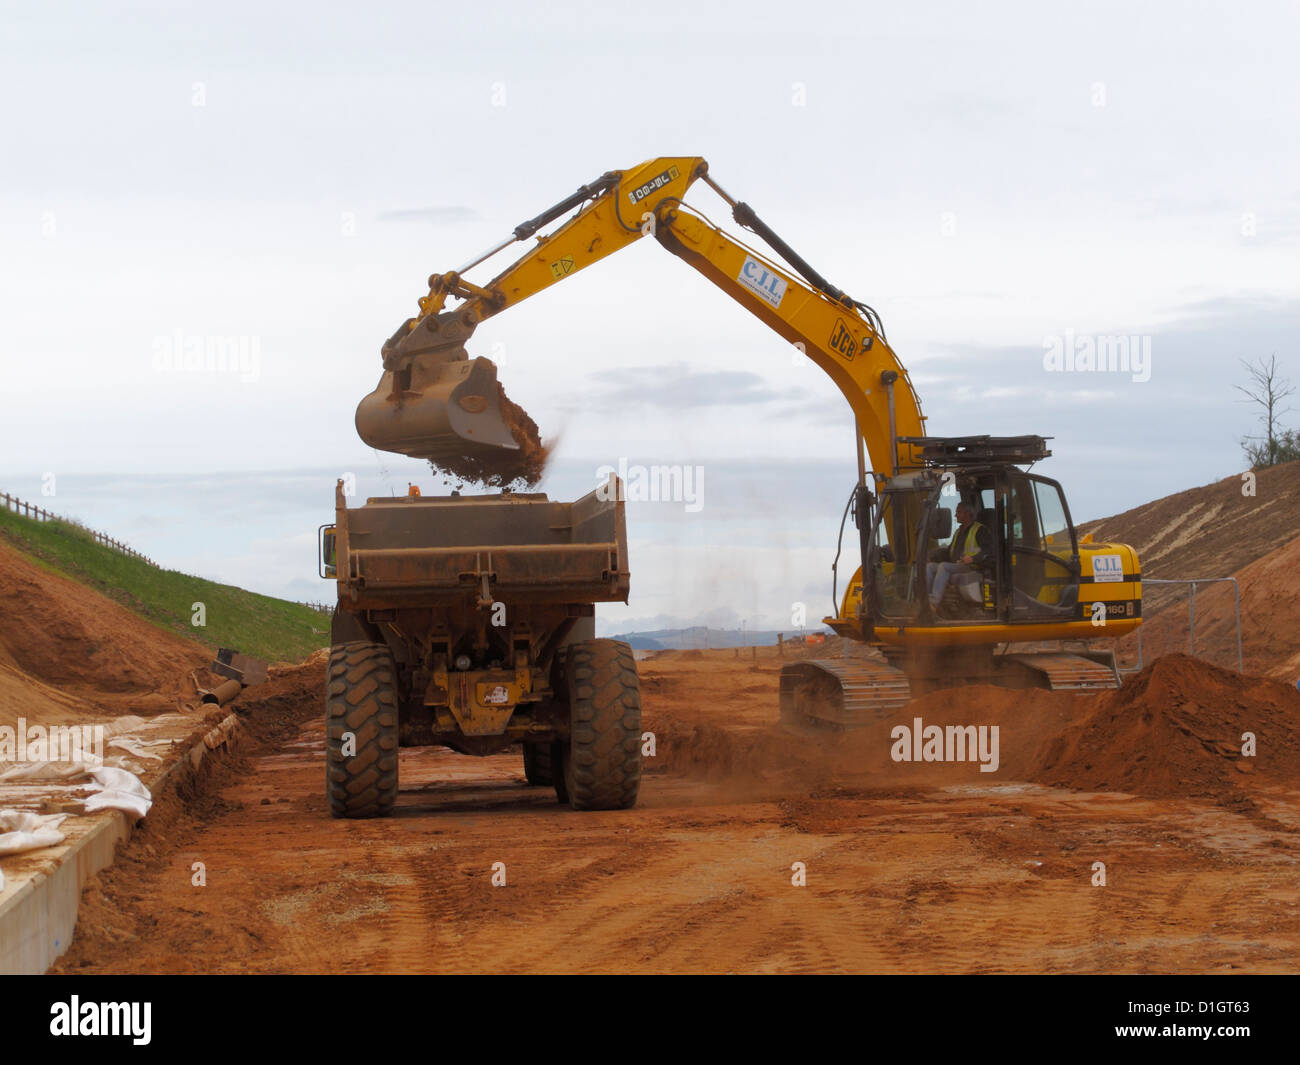 tracked backhoe digger loading large Volvo Dump truck site tipper Stock Photo: 52615979 - Alamy